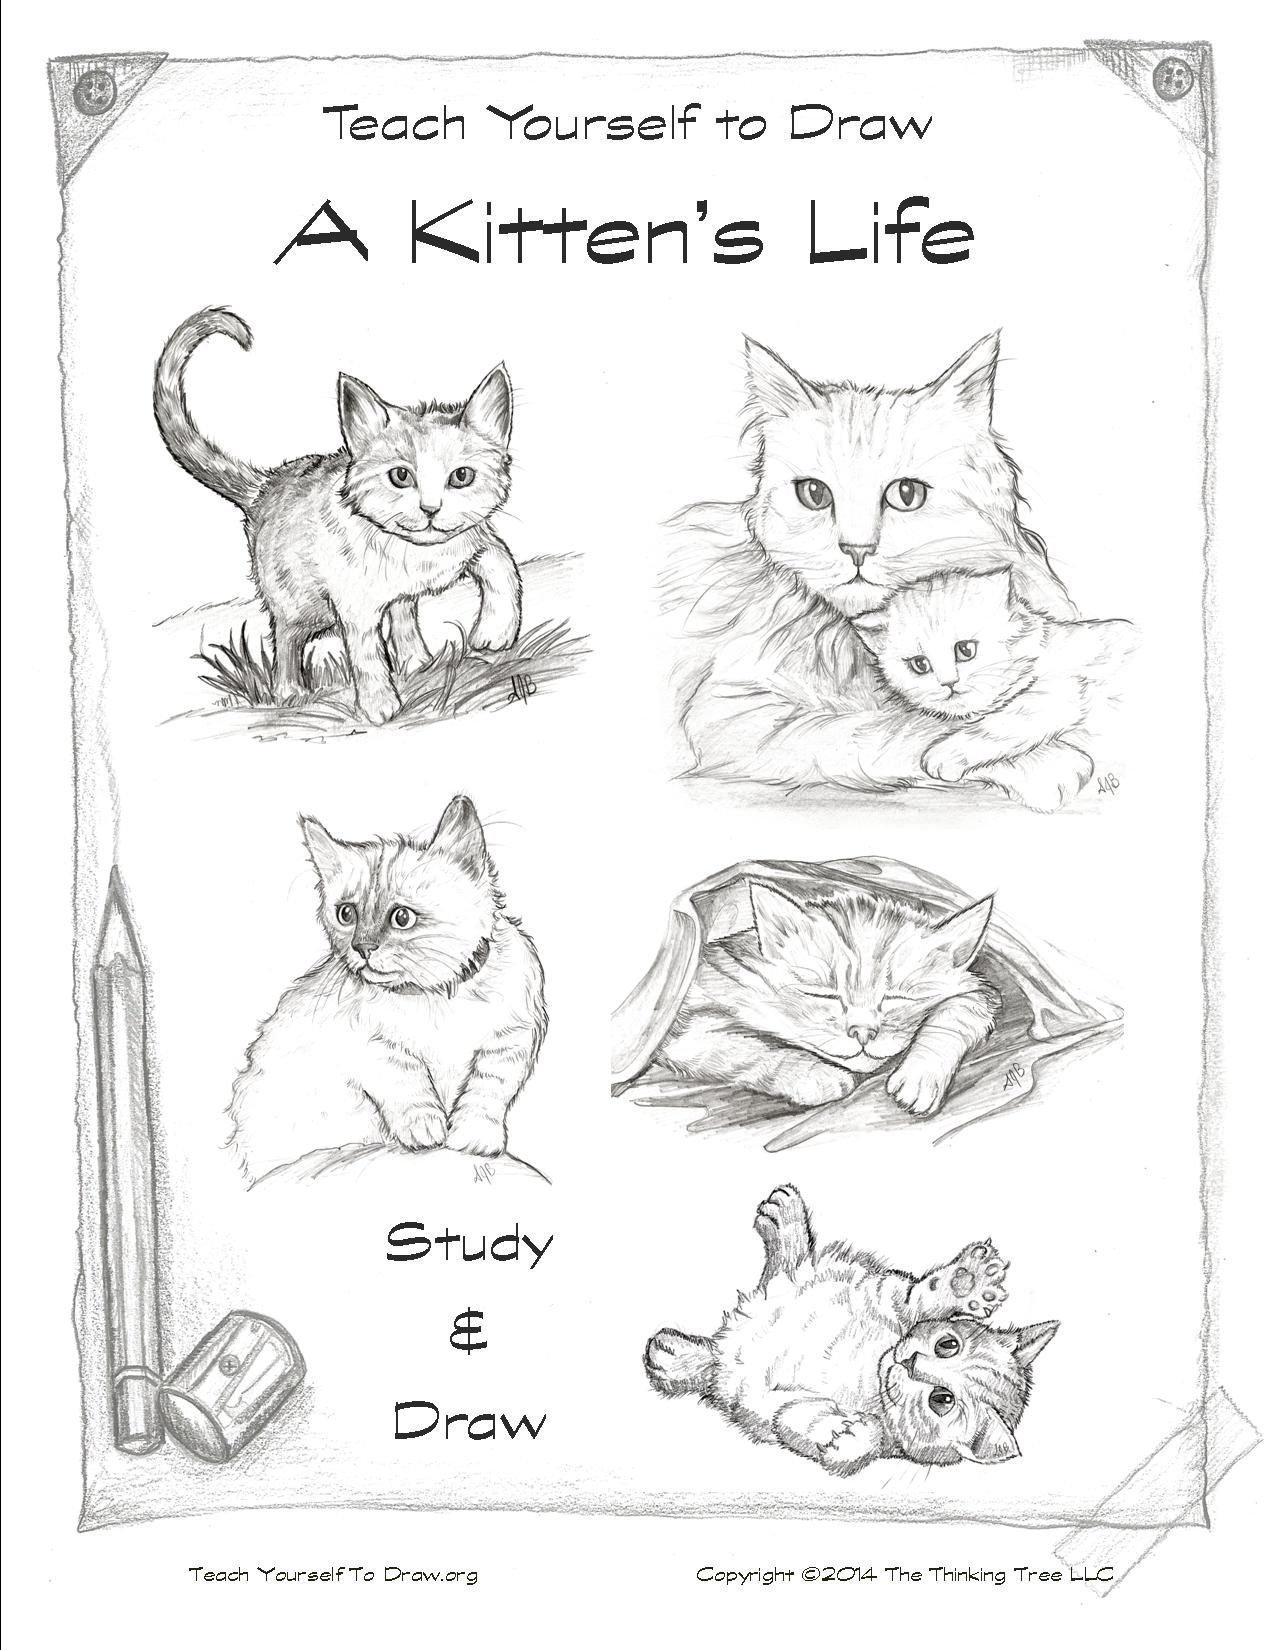 Kittens to Study and Draw